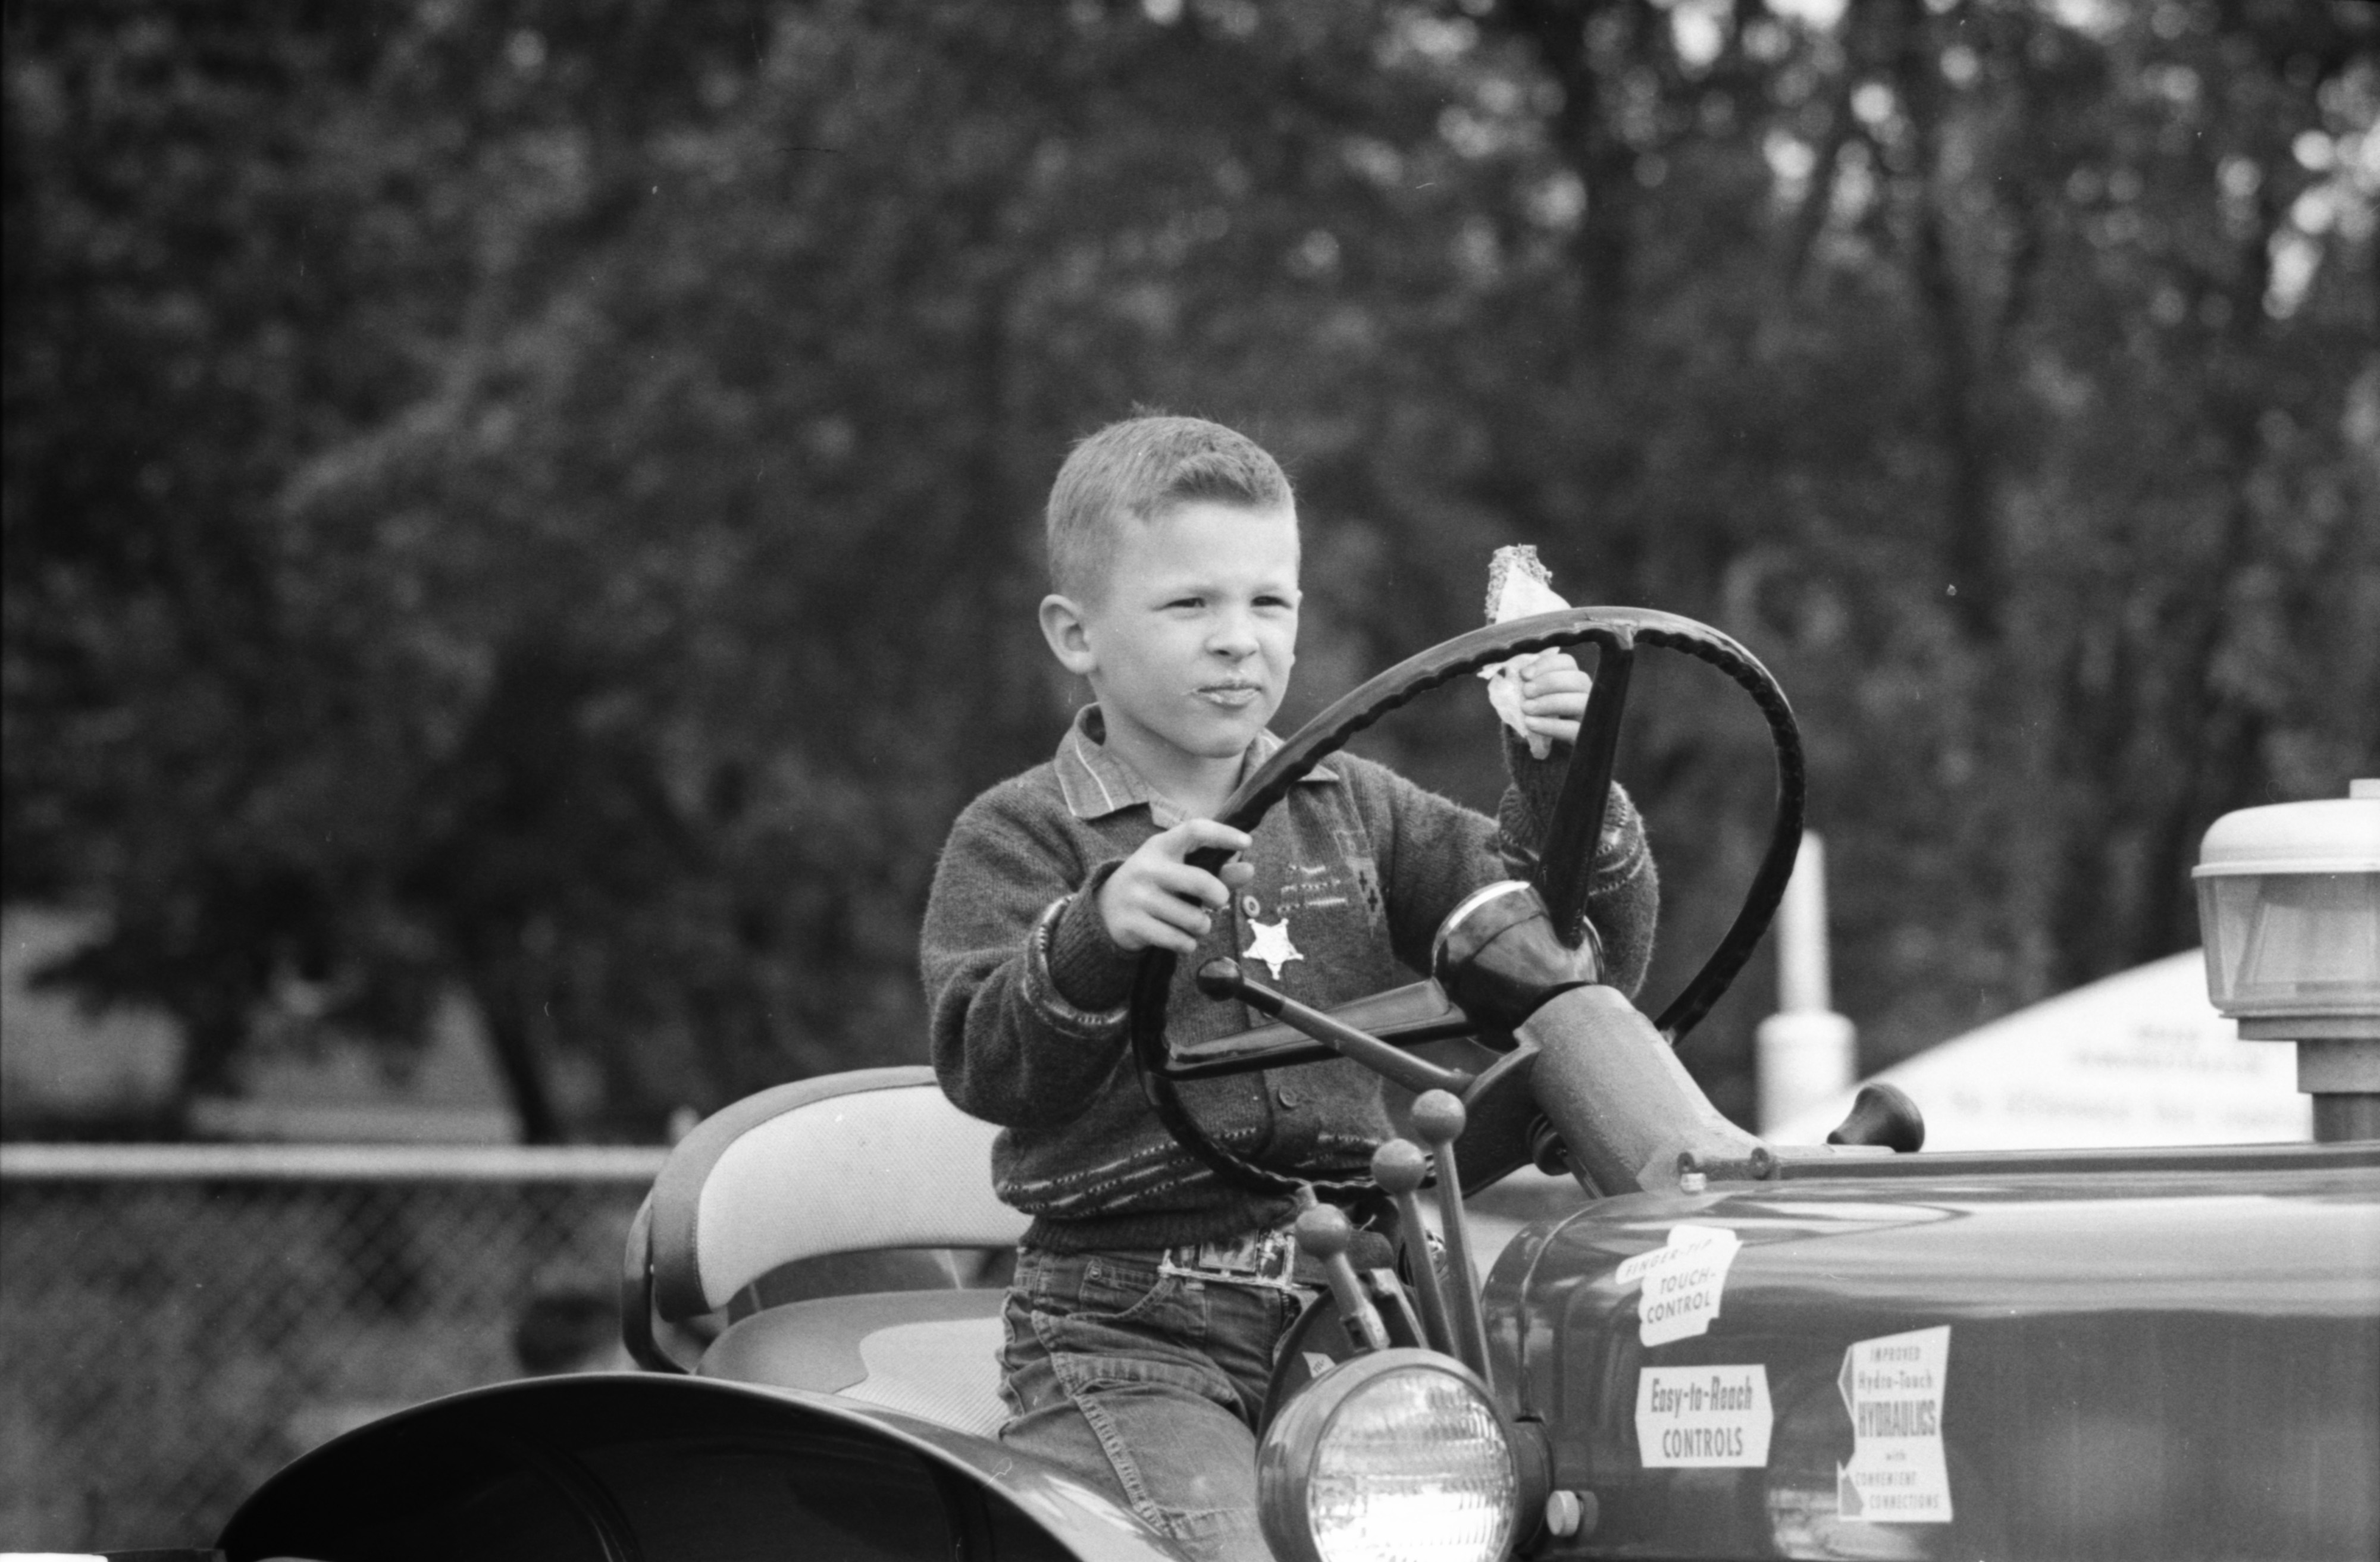 Boy on a Tractor at the Saline Fair image